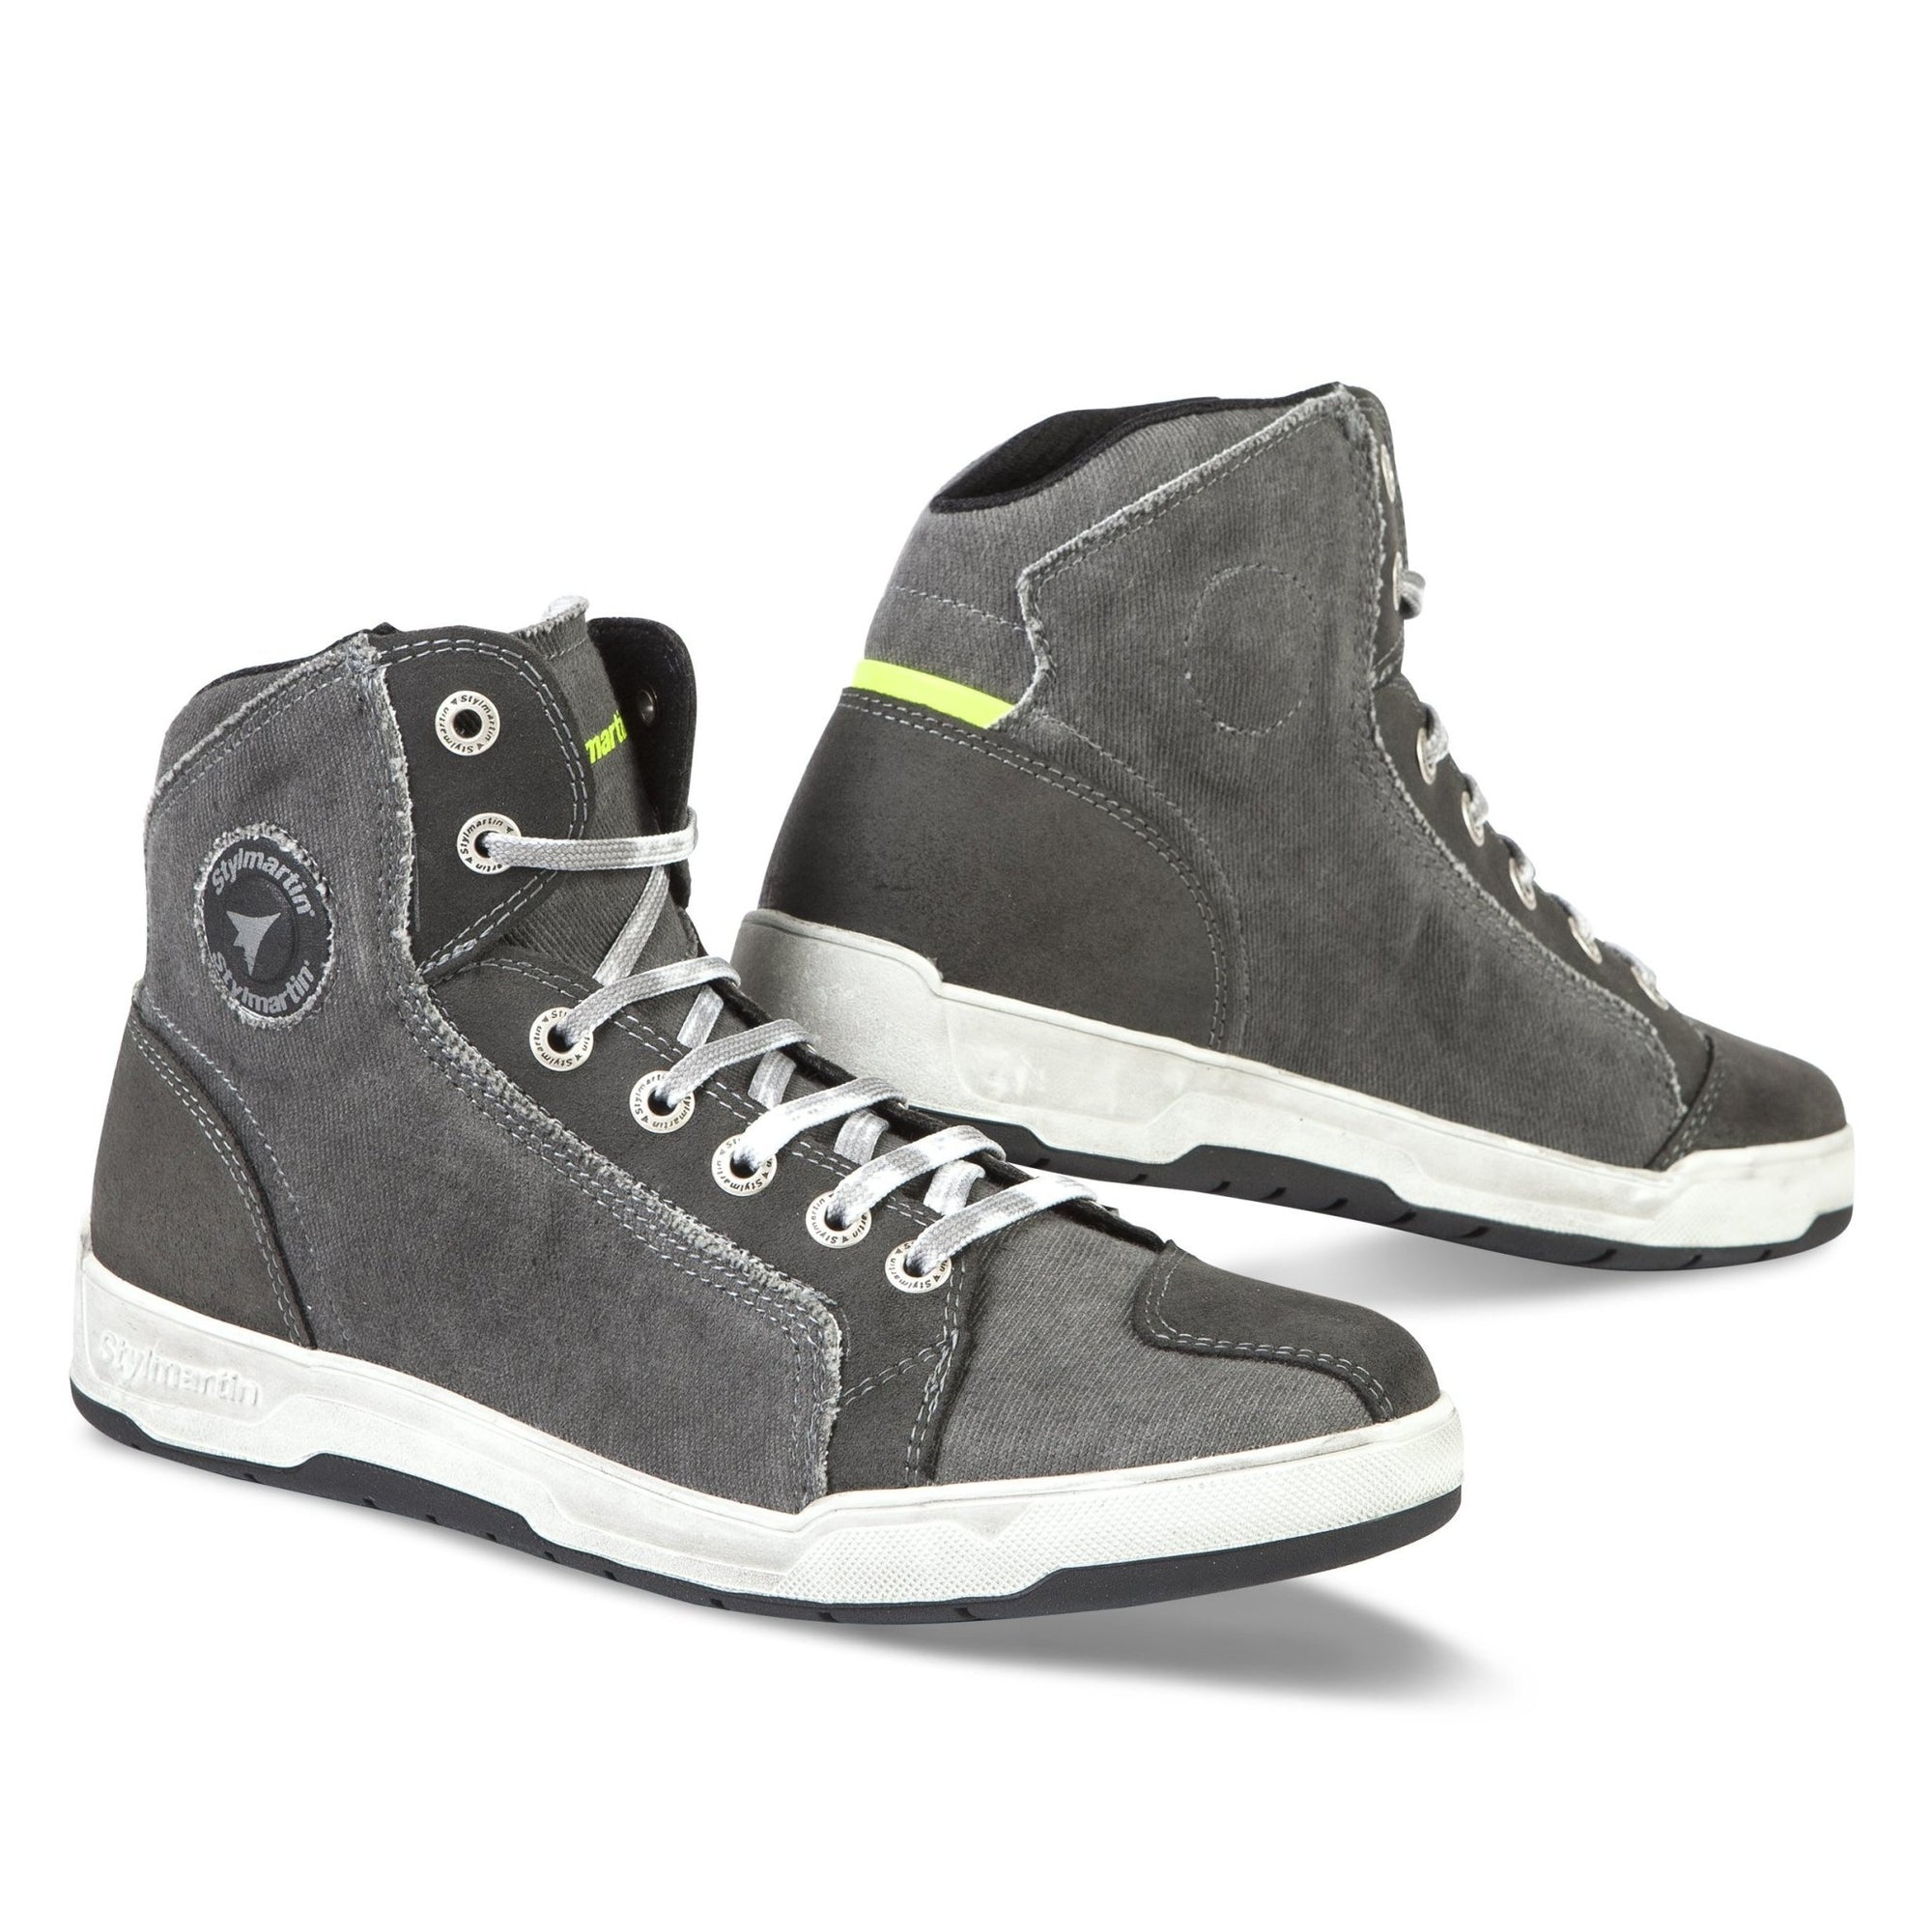 Stylmartin - Stylmartin Sunset Evo Sneaker in Grey - Boots - Salt Flats Clothing